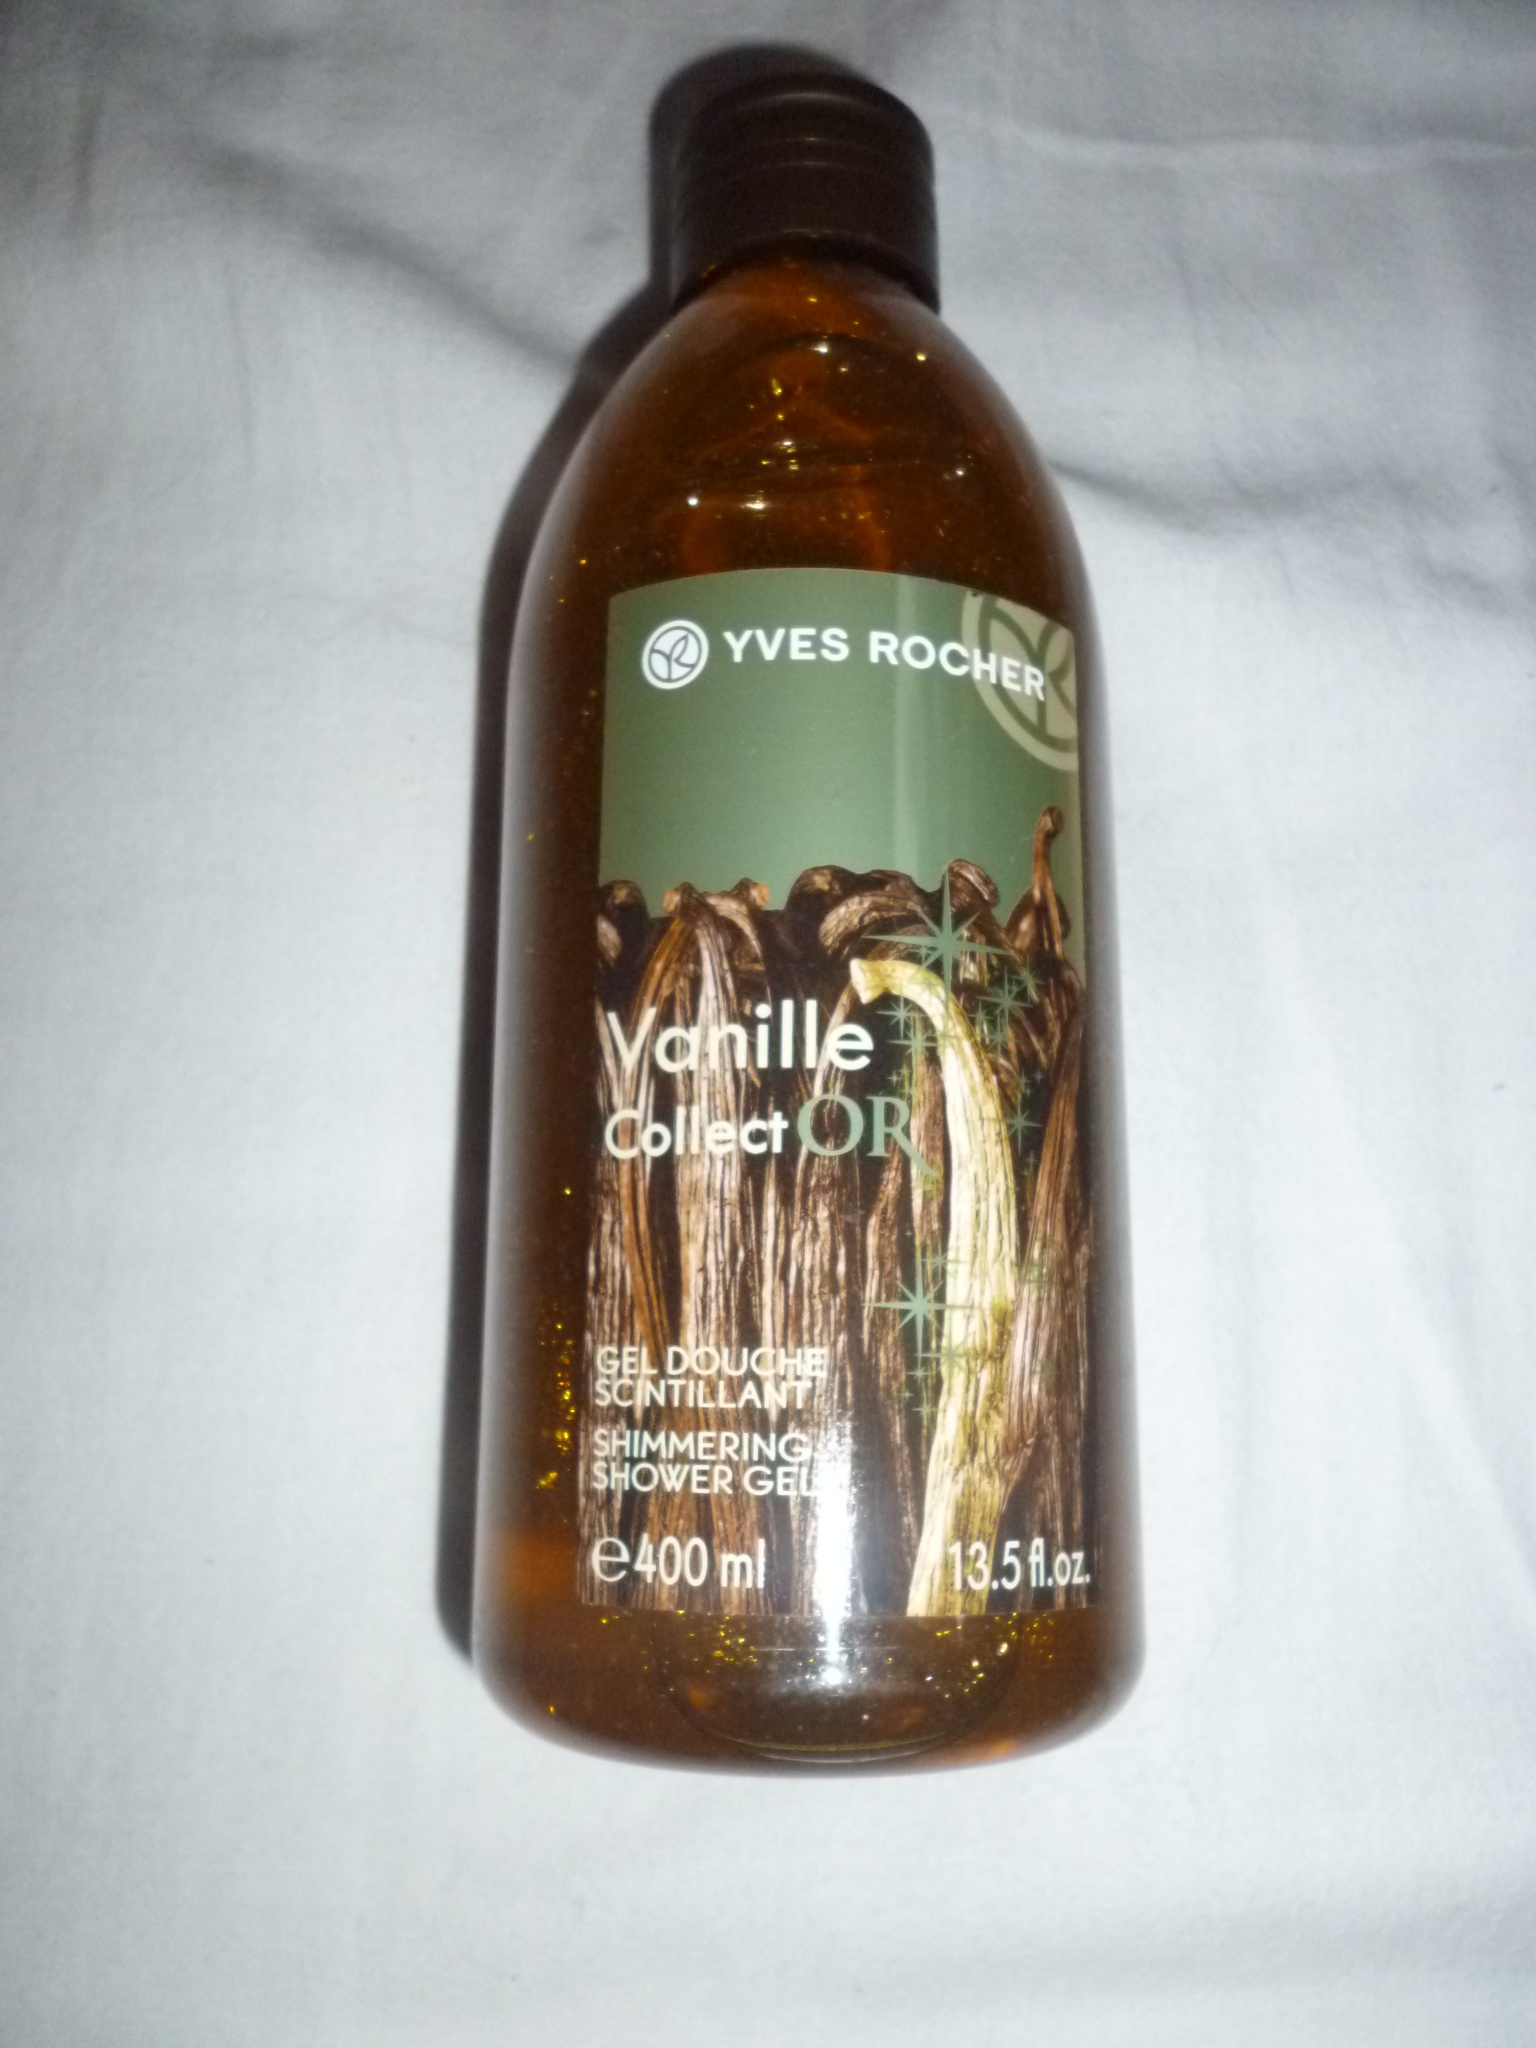 Gel douche scintillant Vanille Colect'or - Yves Rocher